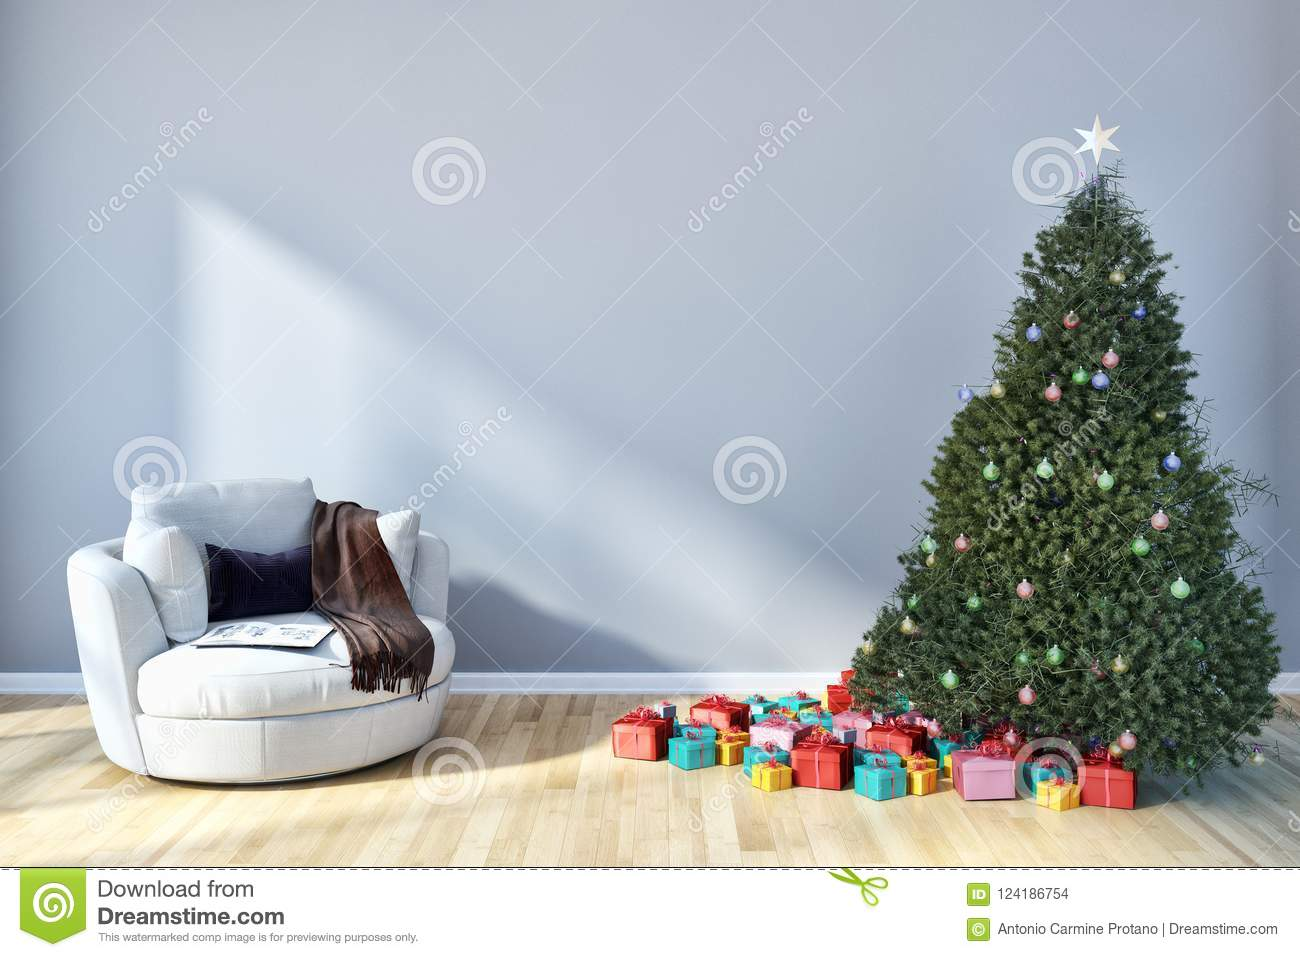 modern bright interiors apartment living room with Christmas tree, 3D rendering illustration